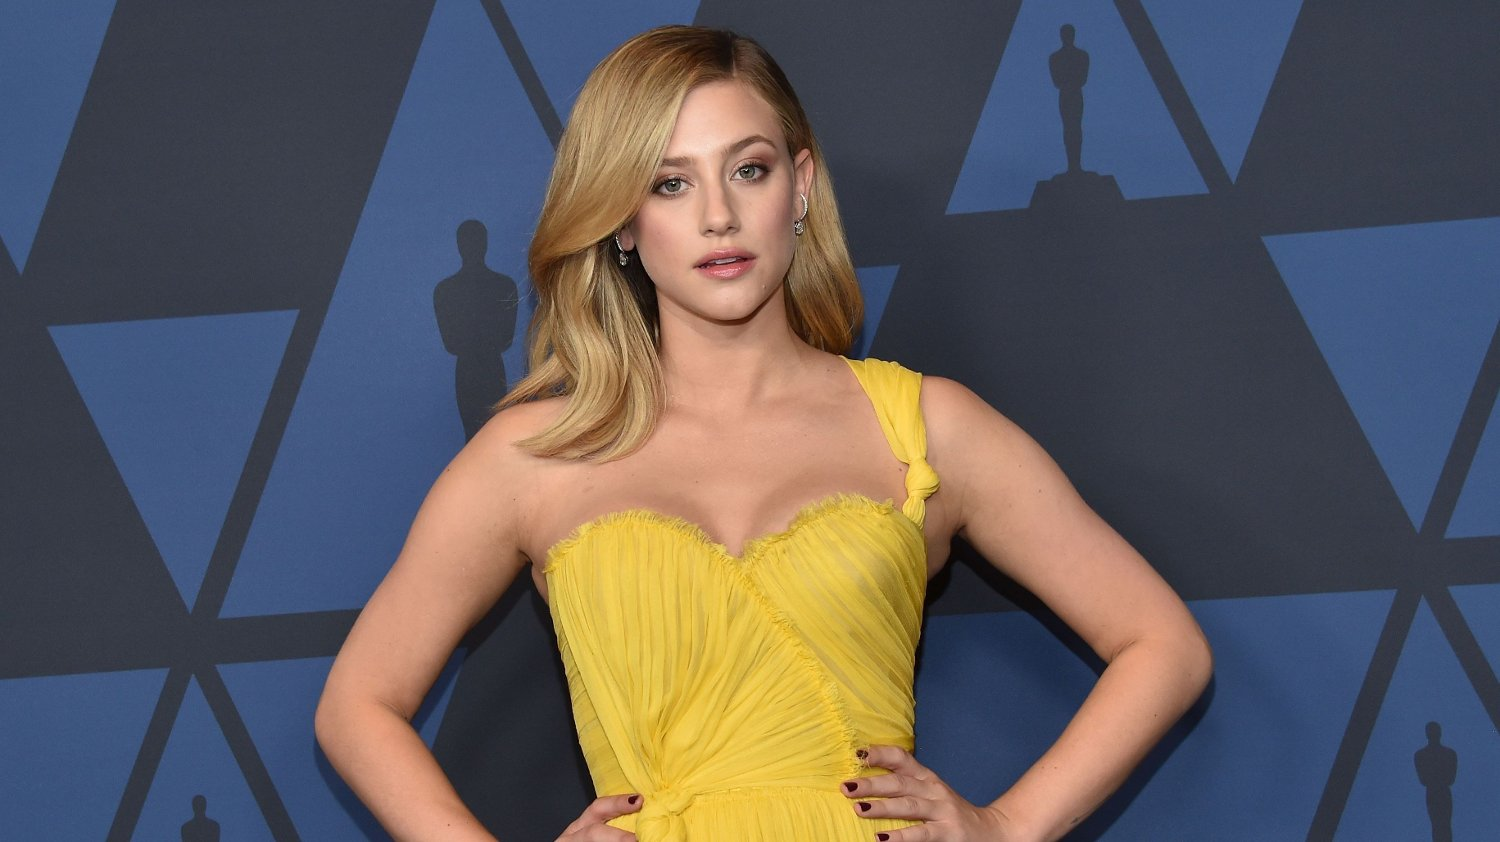 US actress Lili Reinhart arrives to attend the 11th Annual Governors Awards gala hosted by the Academy of Motion Picture Arts and Sciences at the Dolby Theater in Hollywood on October 27, 2019.